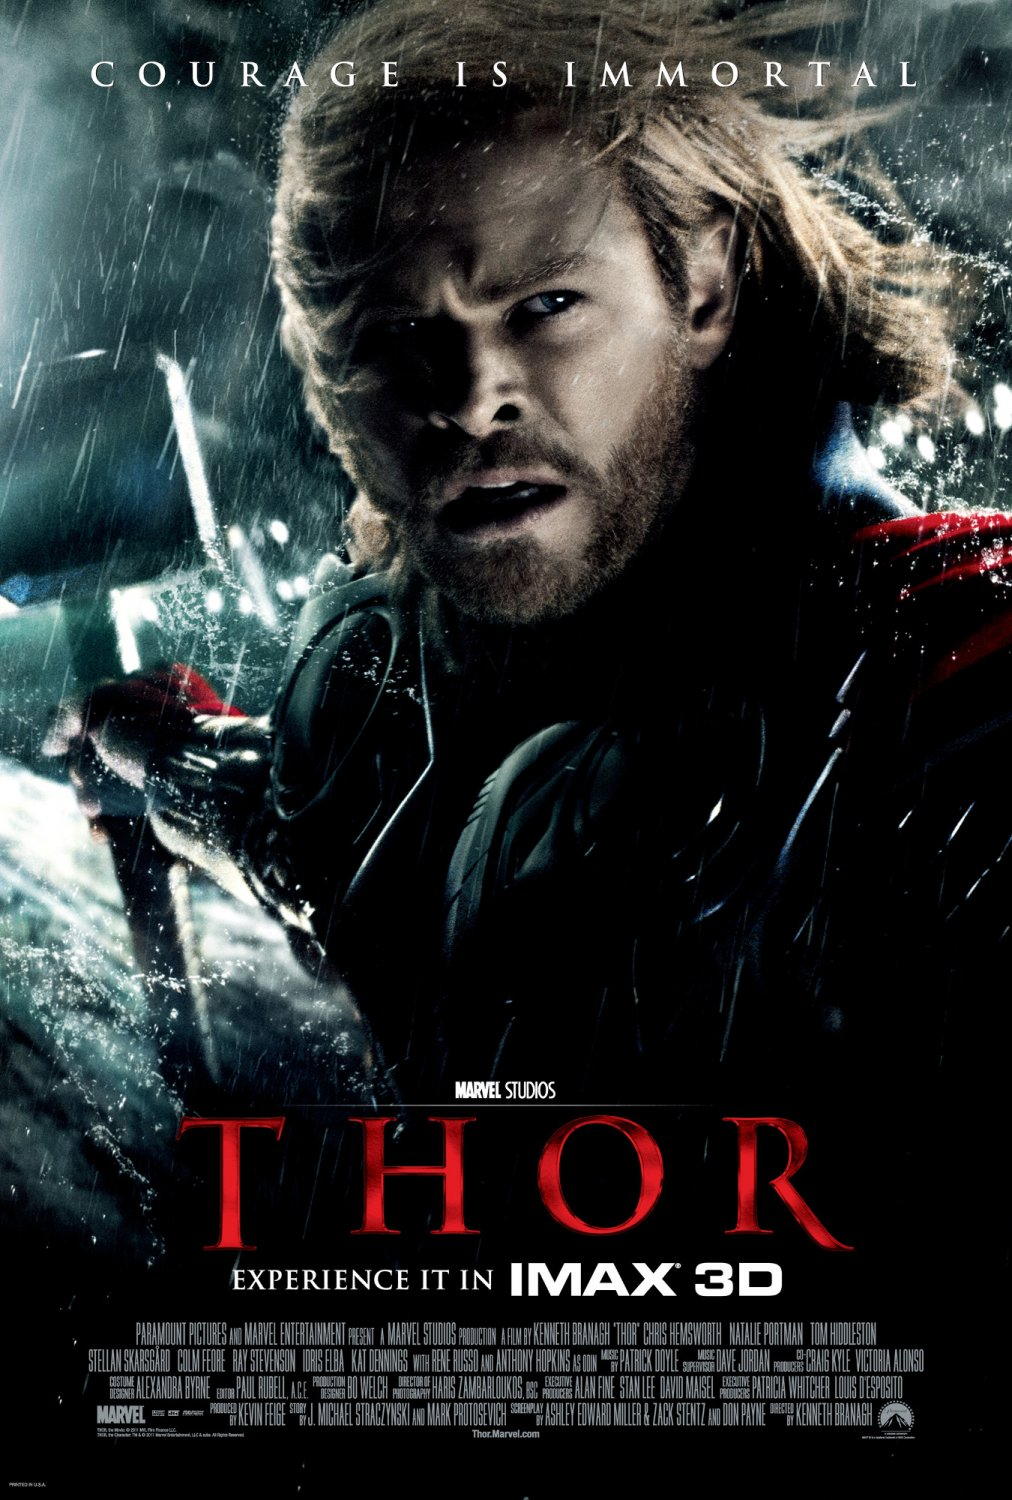 Thor 2011 Movie Poster The Powerful But Arrogant Warrior Thor Is Cast